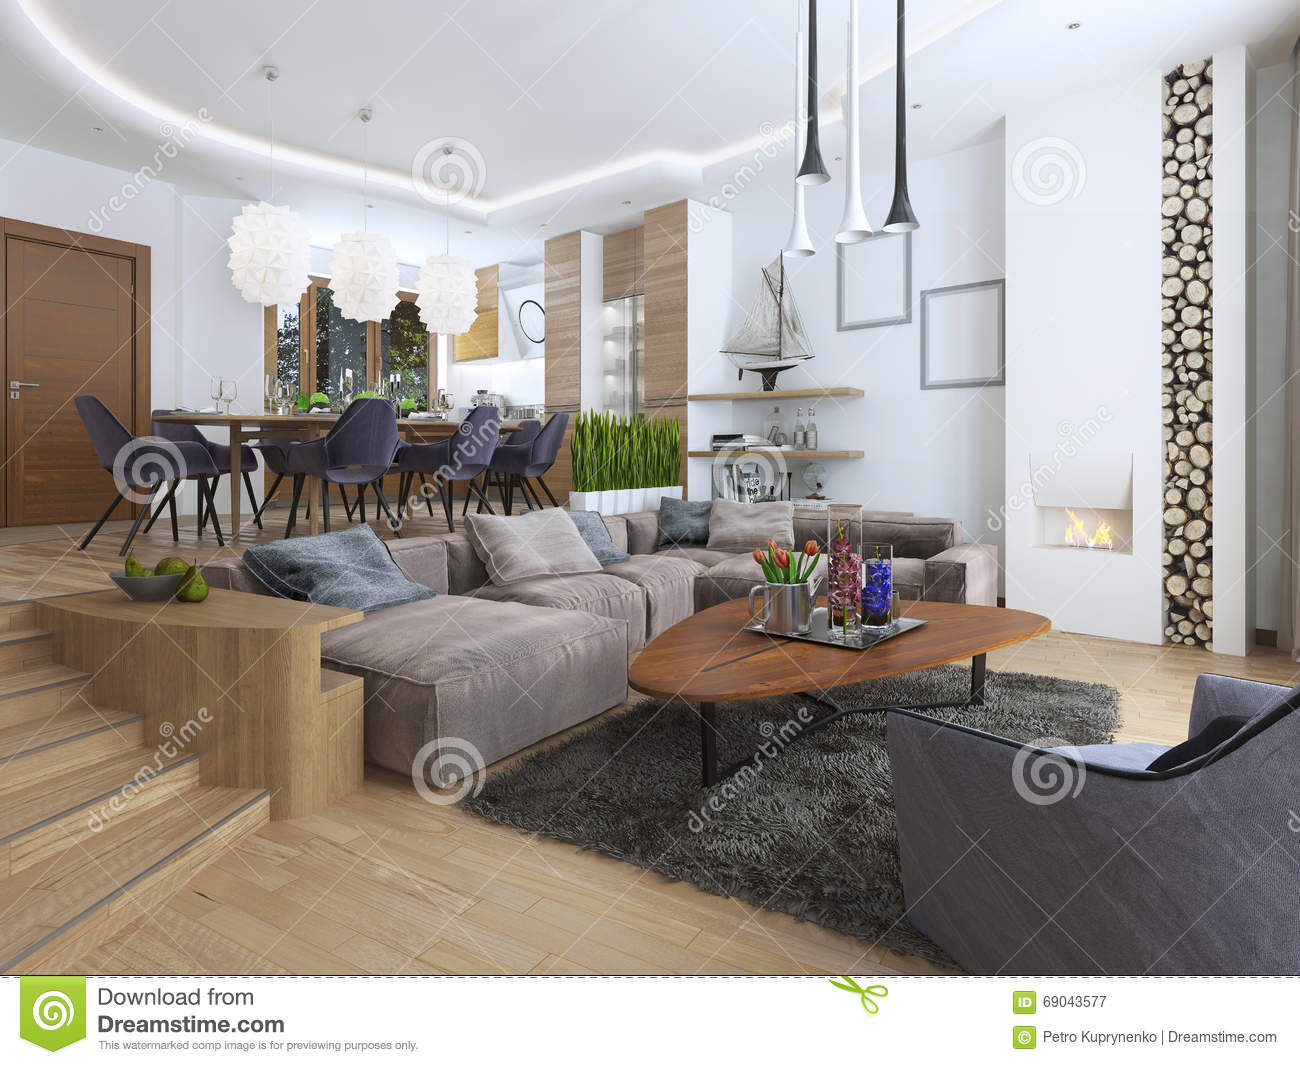 large corner sofa in small living room for philippines modern a loft style stock image of blending smoothly into the kitchen dining shelves with decorations soft chair floor